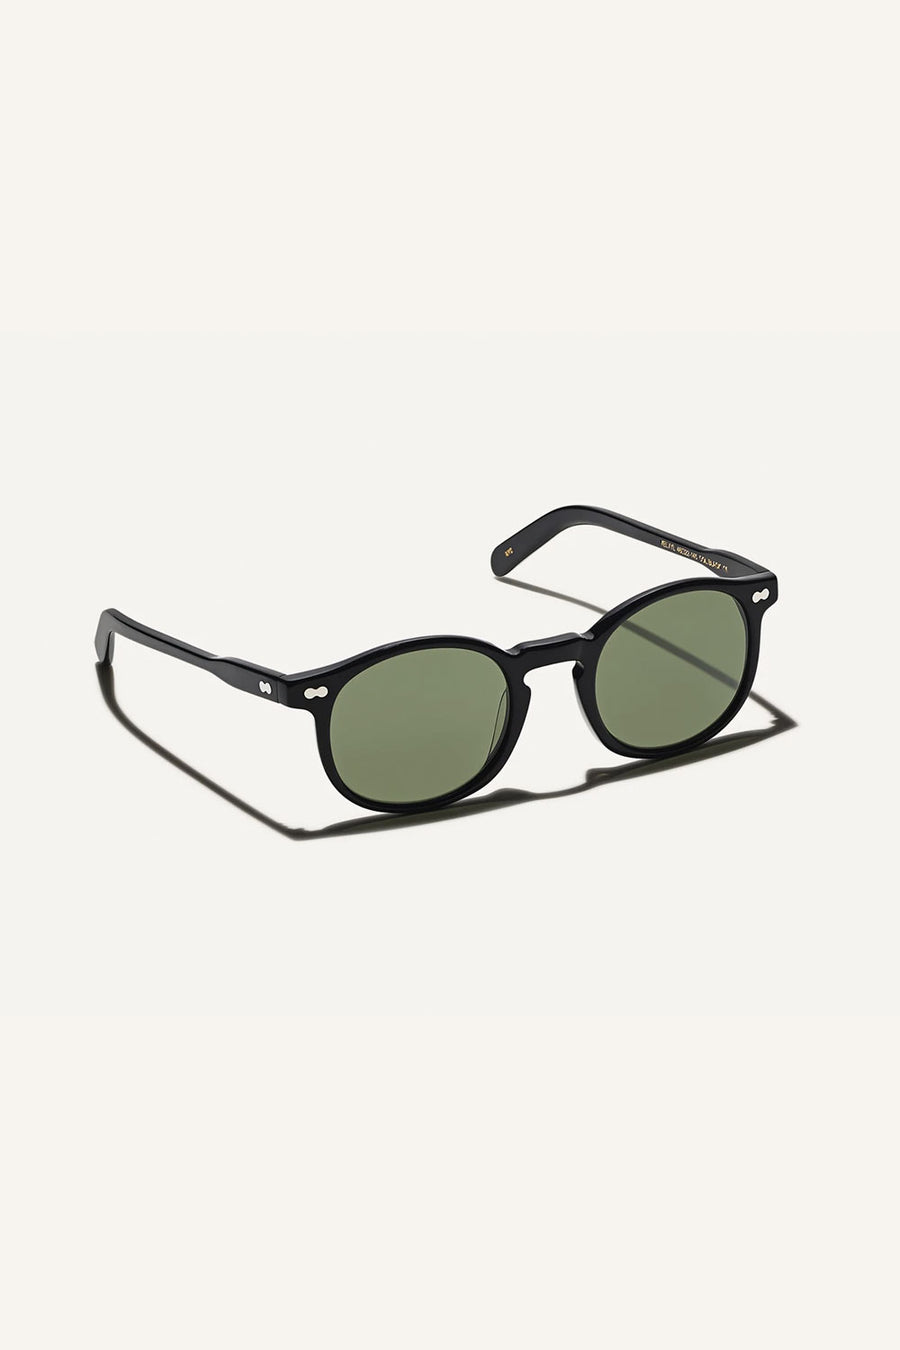 Velvyl G15 | Black | MOSCOT NZ | Eyewear NZ | Black Box Boutique Auckland | Womens Fashion NZ